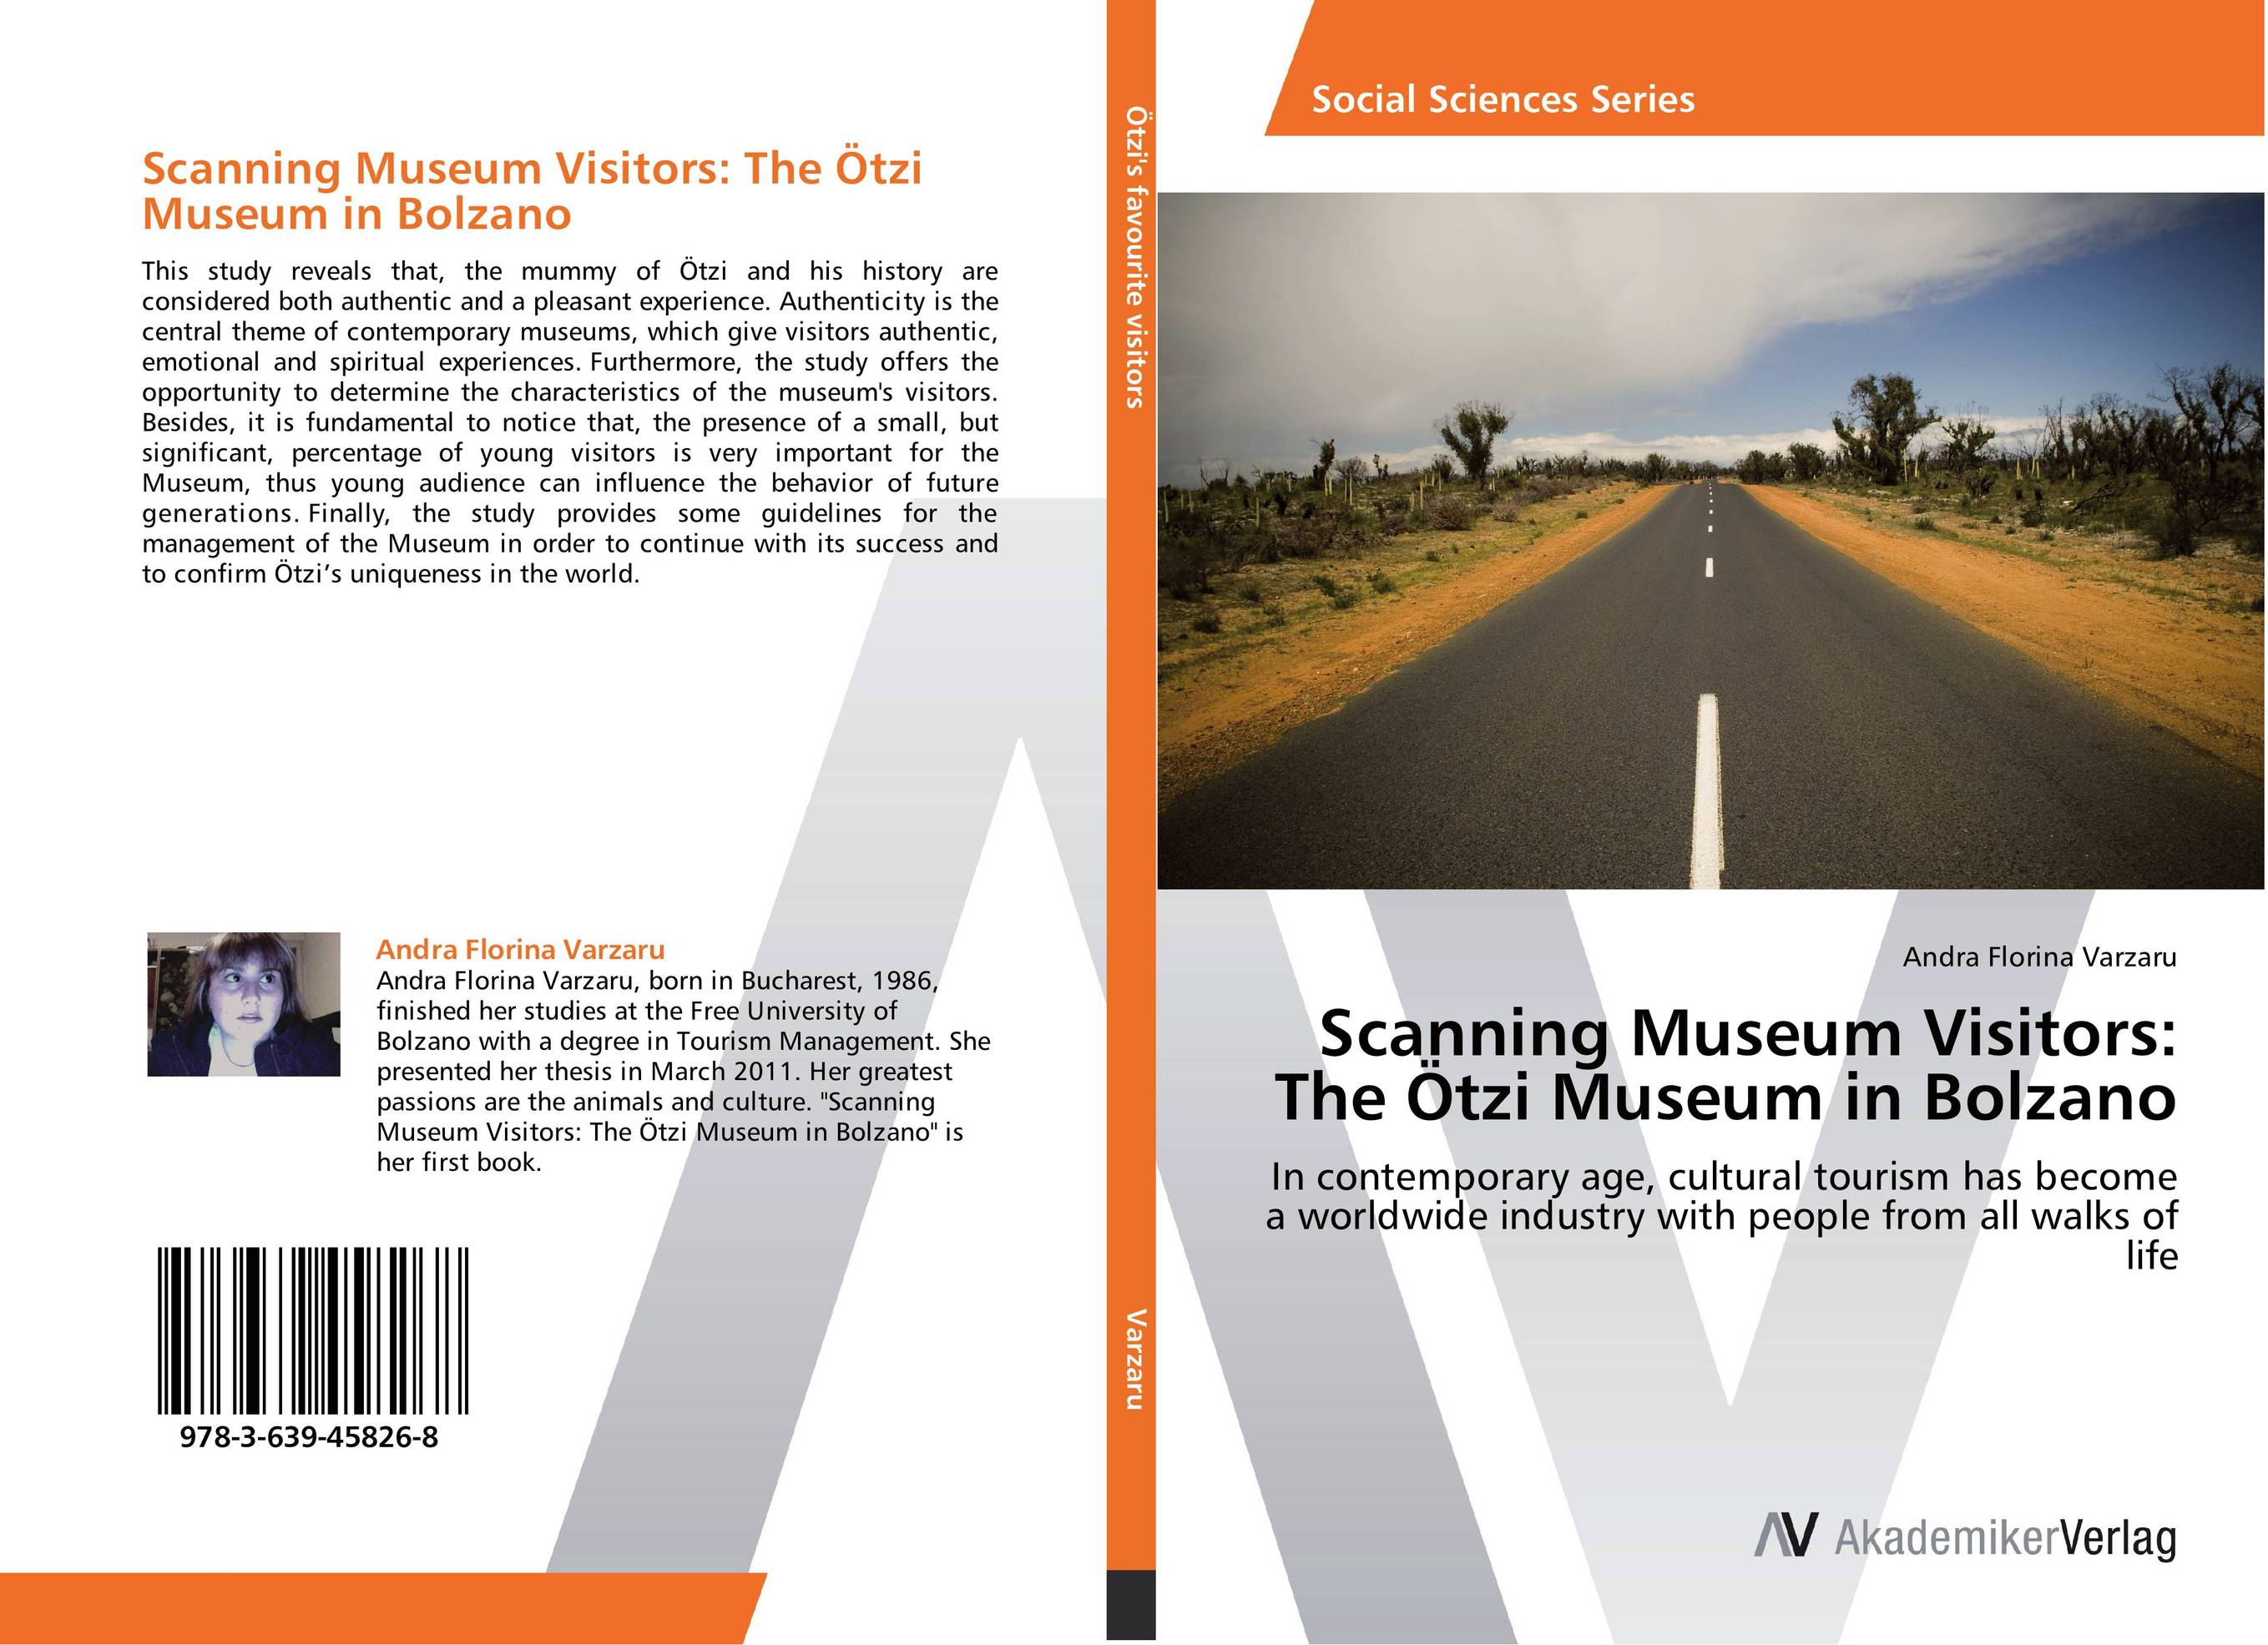 Scanning Museum Visitors: The Otzi Museum in Bolzano samuel richardson clarissa or the history of a young lady vol 8